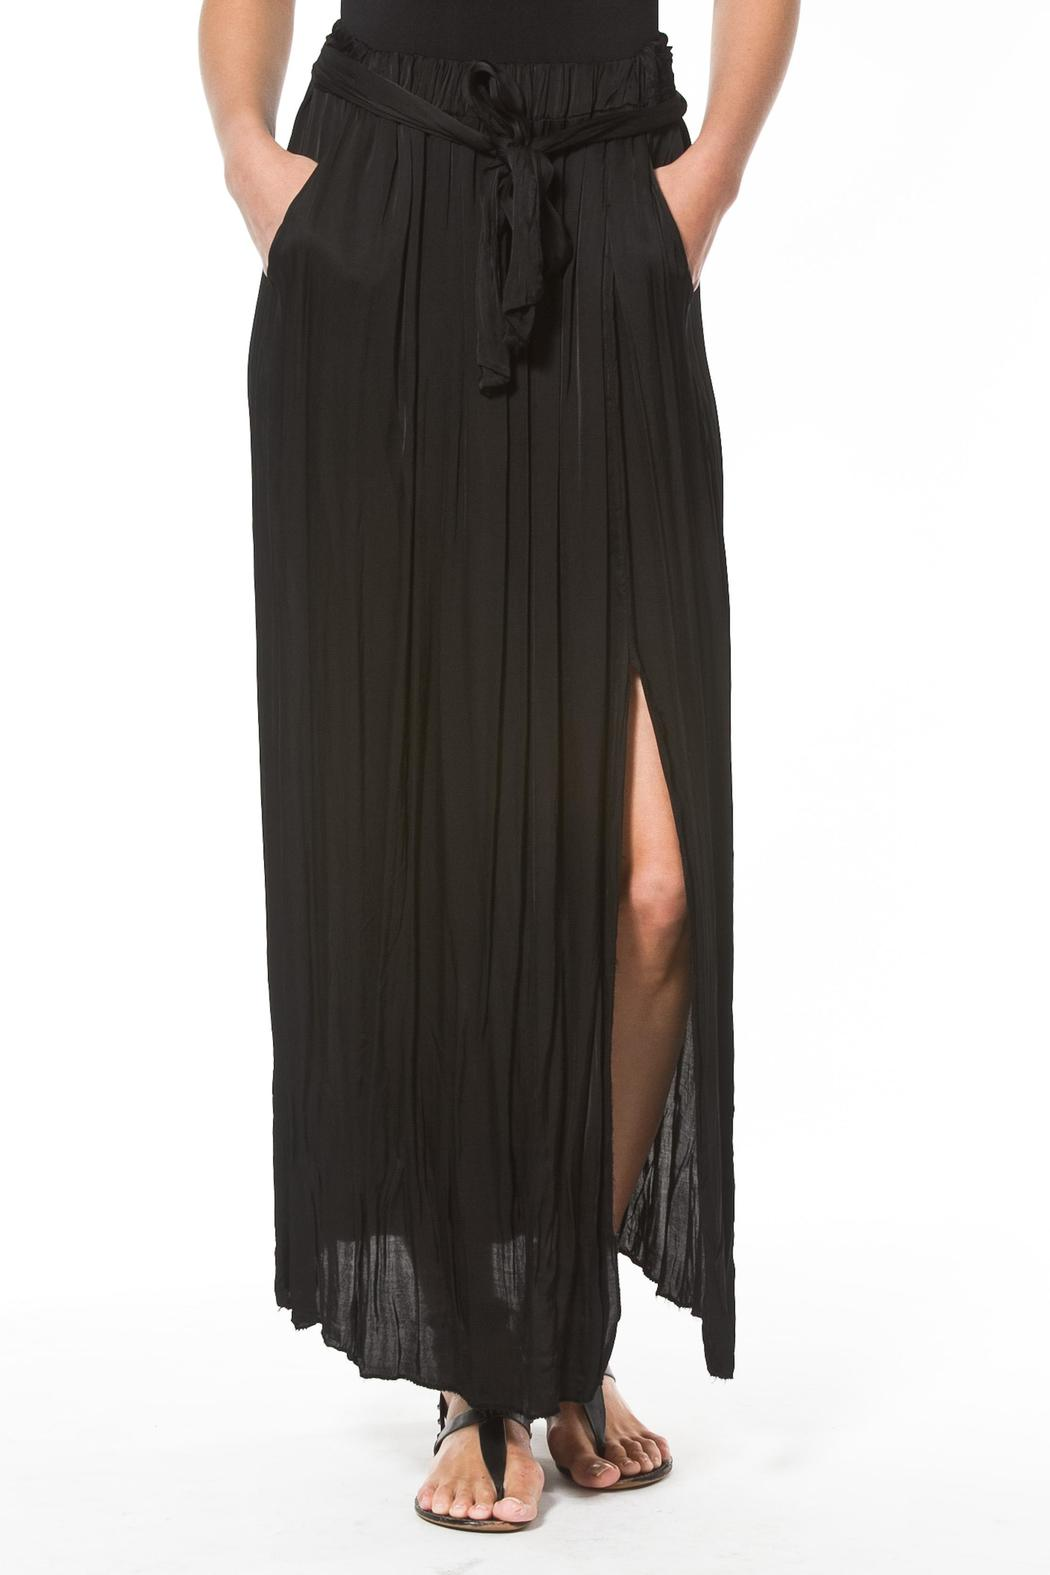 madonna co maxi skirt from east side by madonna